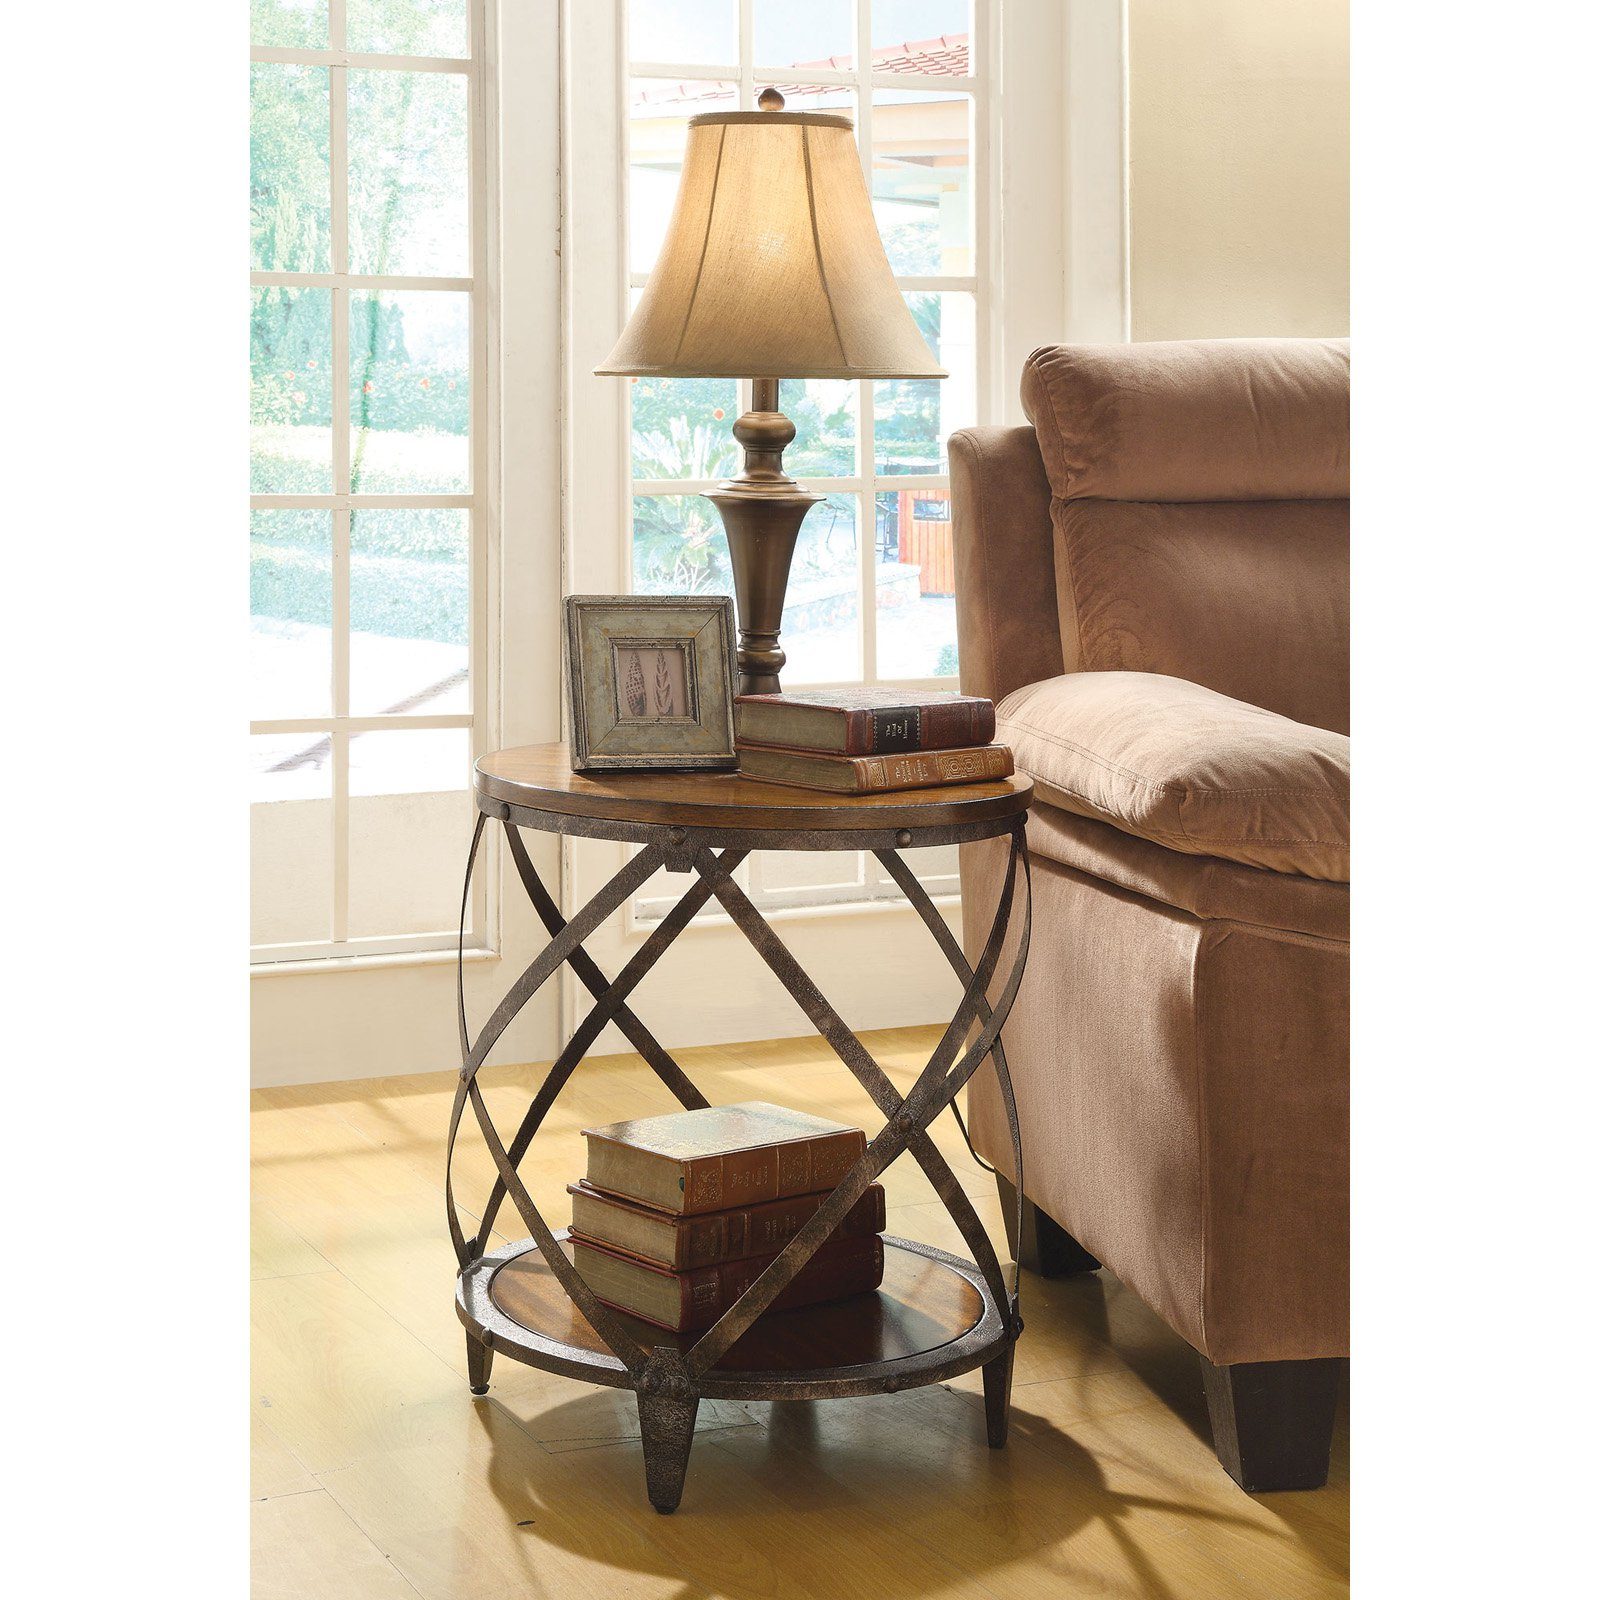 coaster furniture brown spiral metal frame accent table tables vintage half moon wood and glass nest cordless battery lamp home theater round top outdoor chair covers rectangular